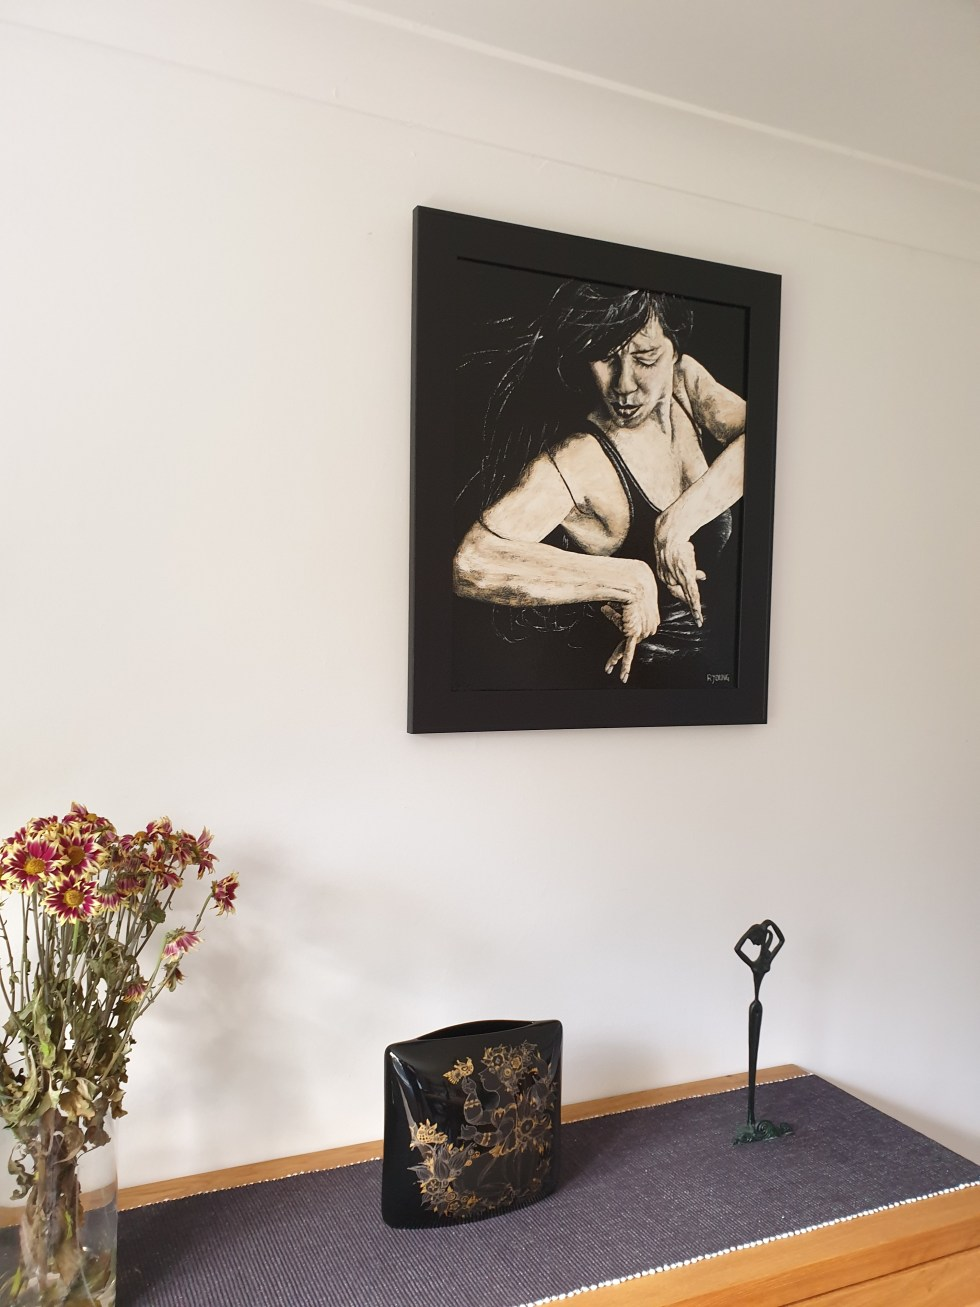 The Privacy of Flamenco framed and hung in my home for reference